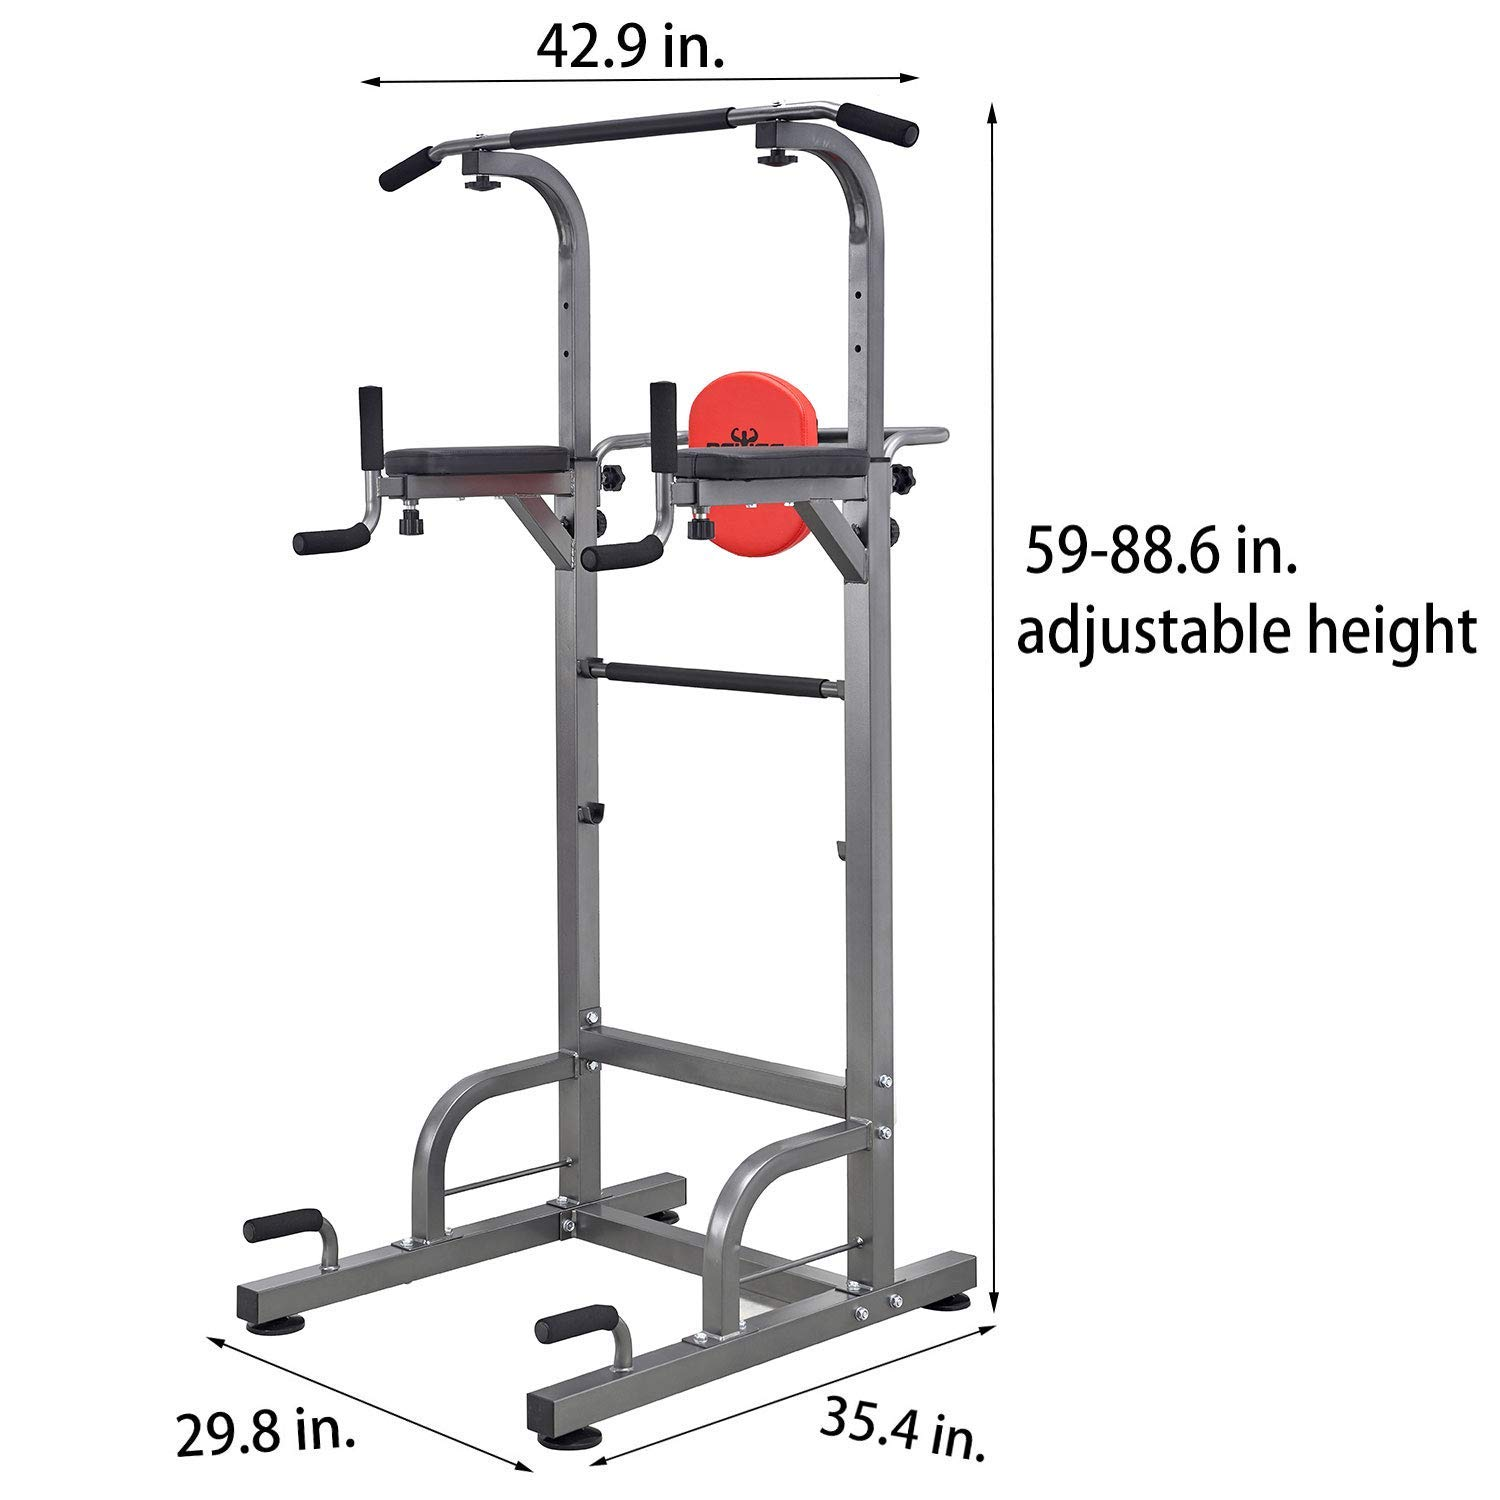 RELIFE REBUILD YOUR LIFE Power Tower Workout Dip Station for Home Gym Strength Training Fitness Equipment Newer Version by RELIFE REBUILD YOUR LIFE (Image #5)